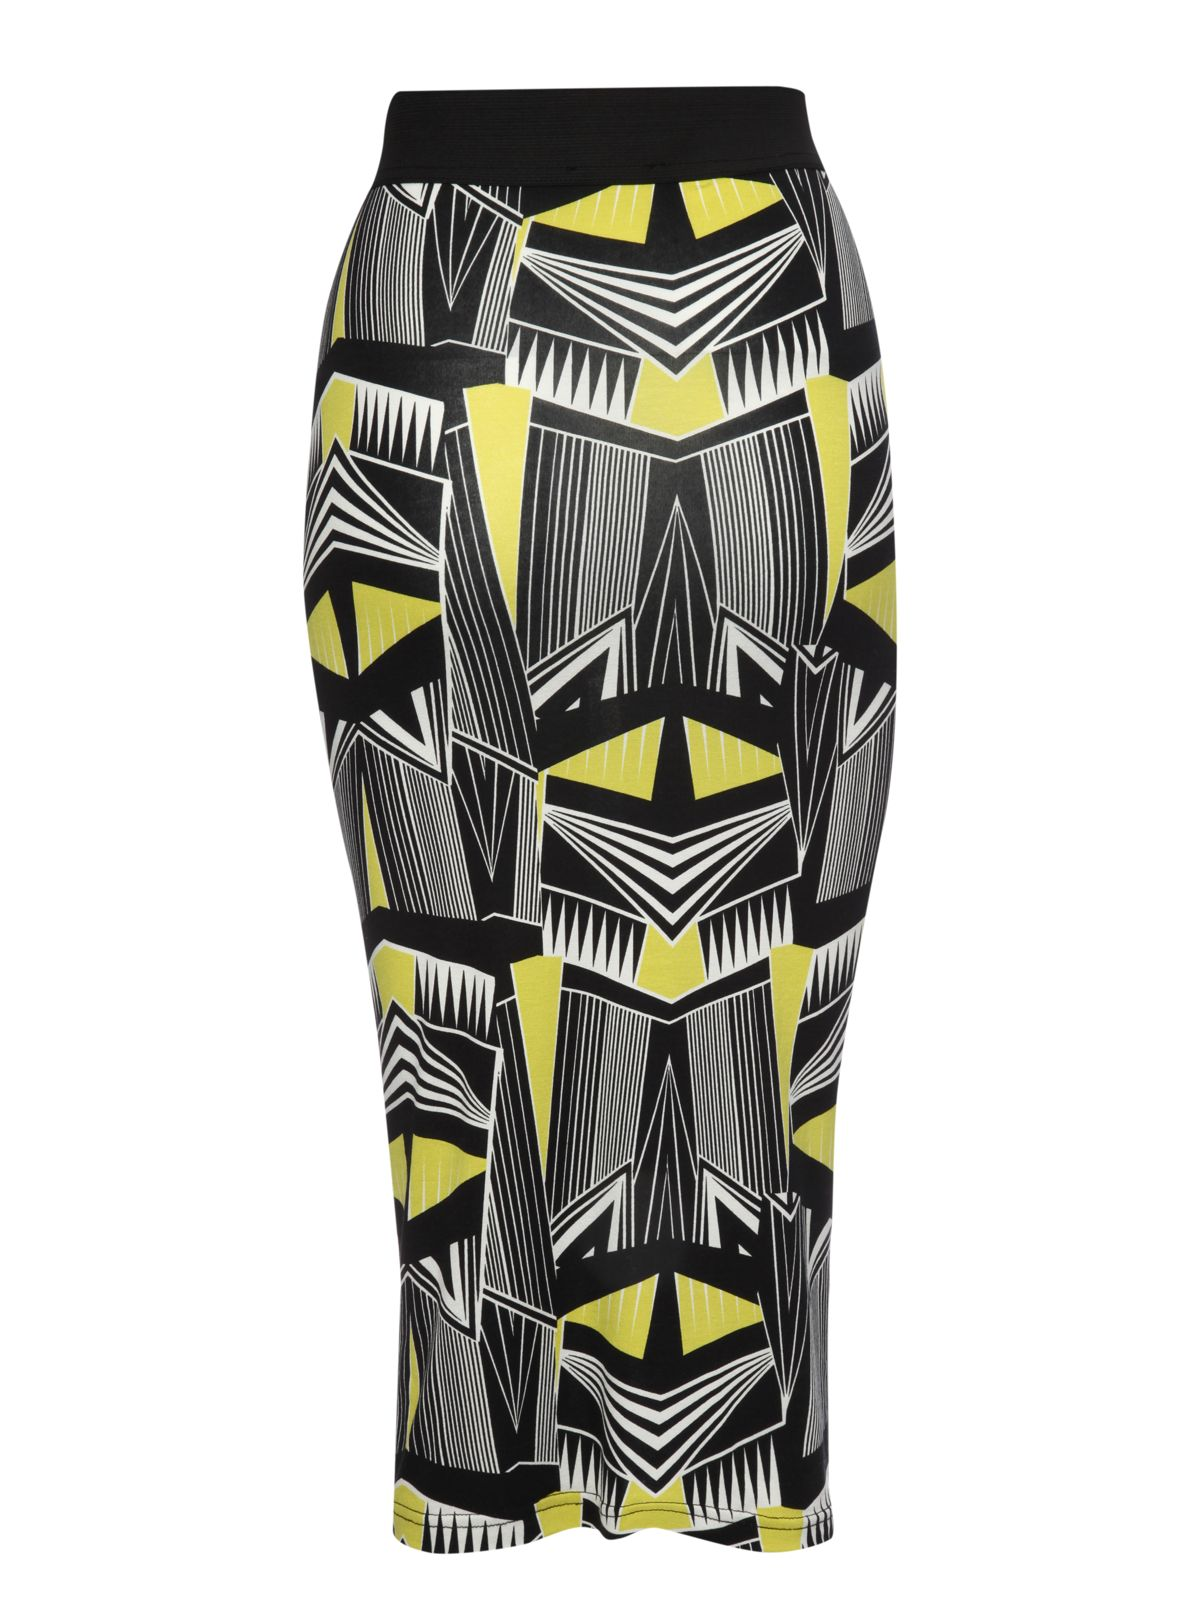 Geometric print pencil skirt